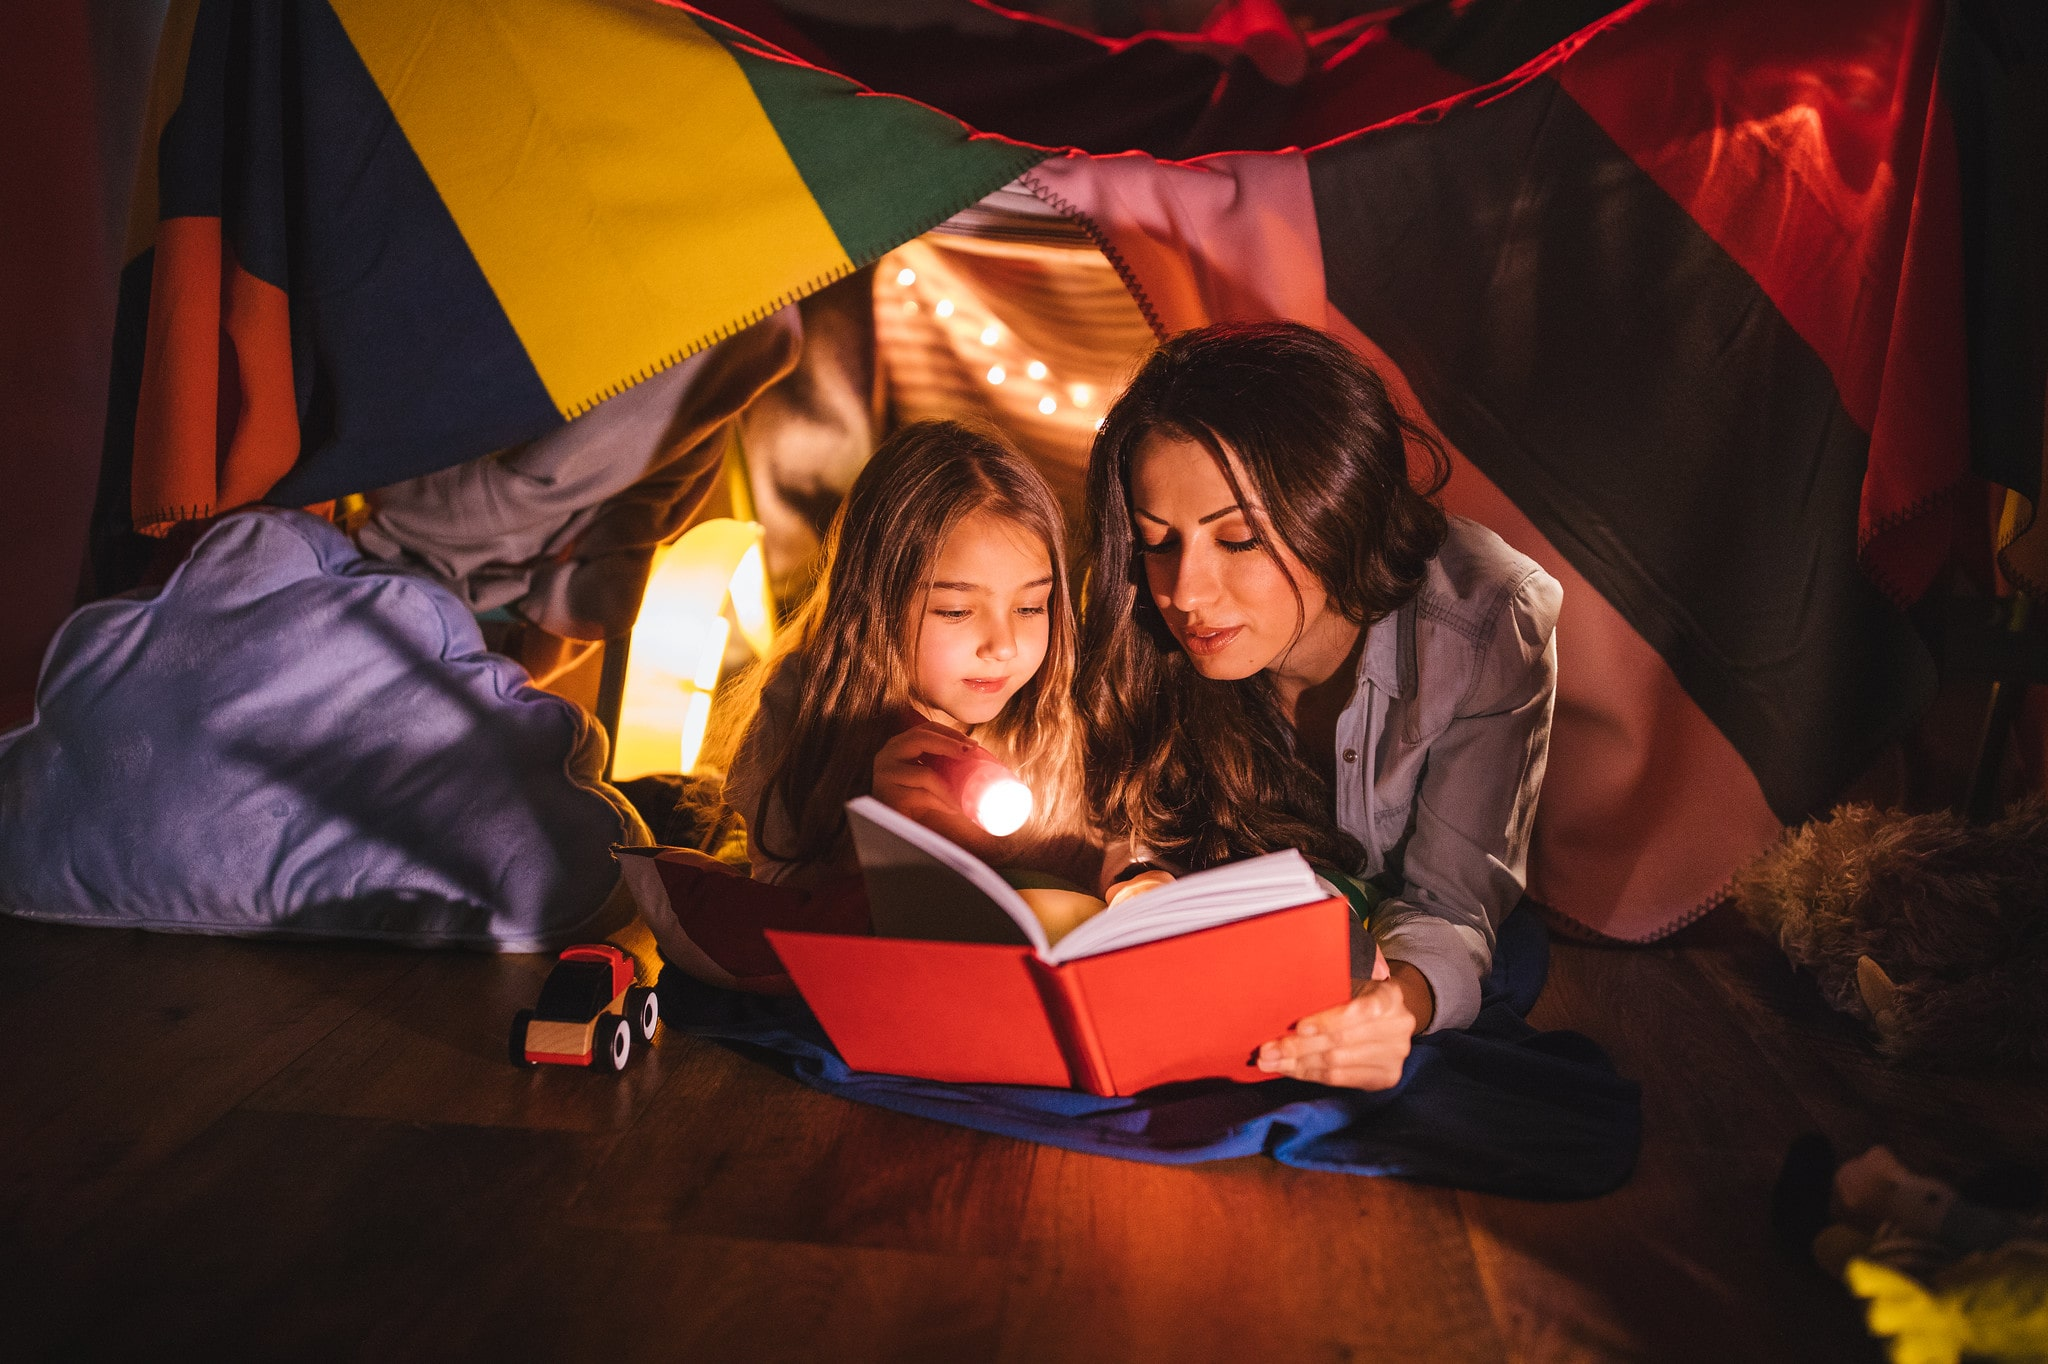 mother and daughter in bedroom den reading a book together